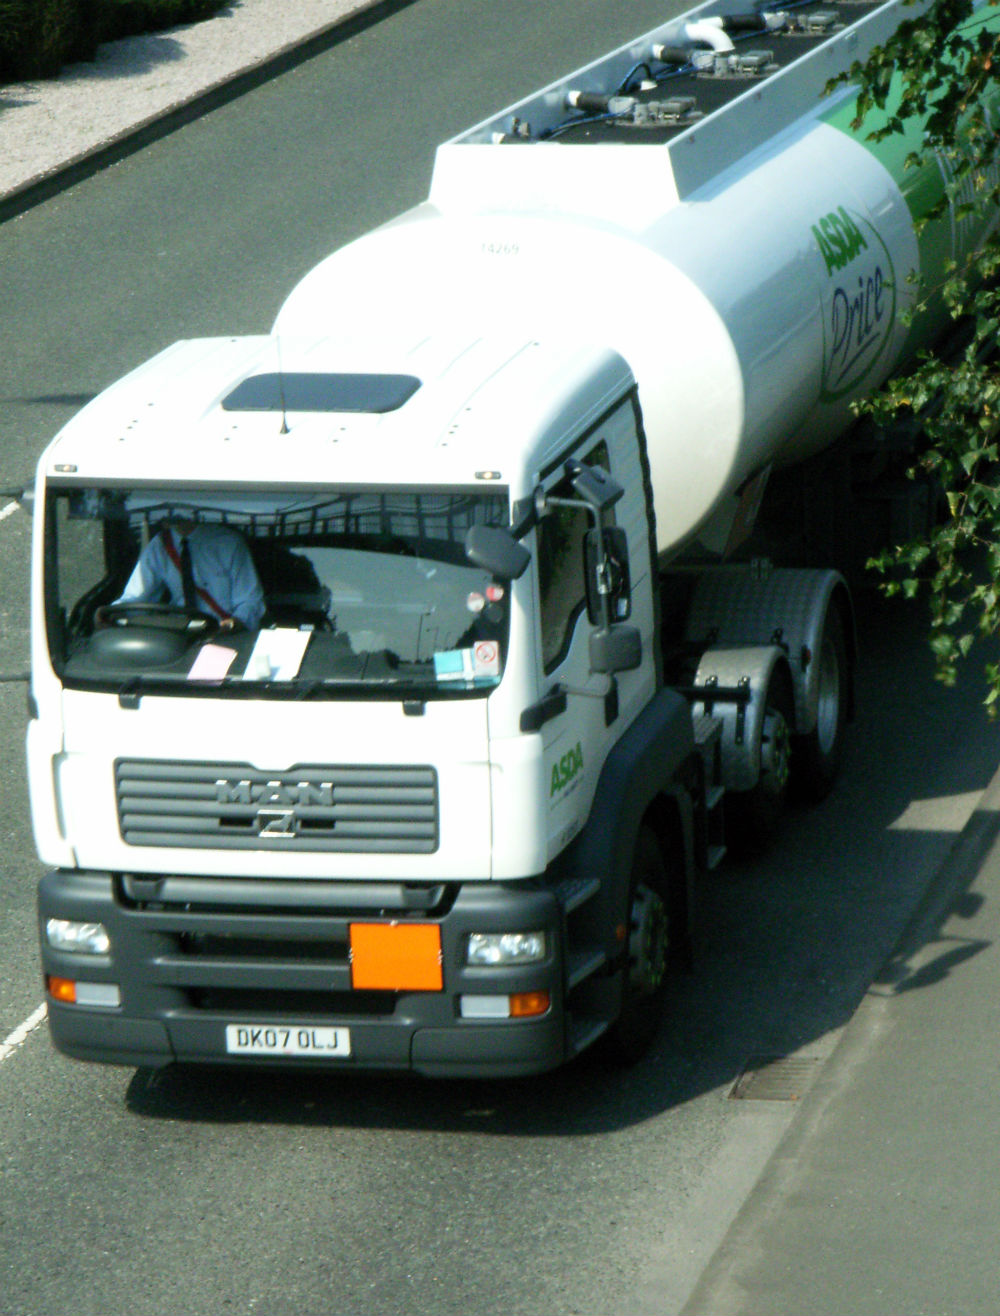 GPS will protect fuel tankers in India